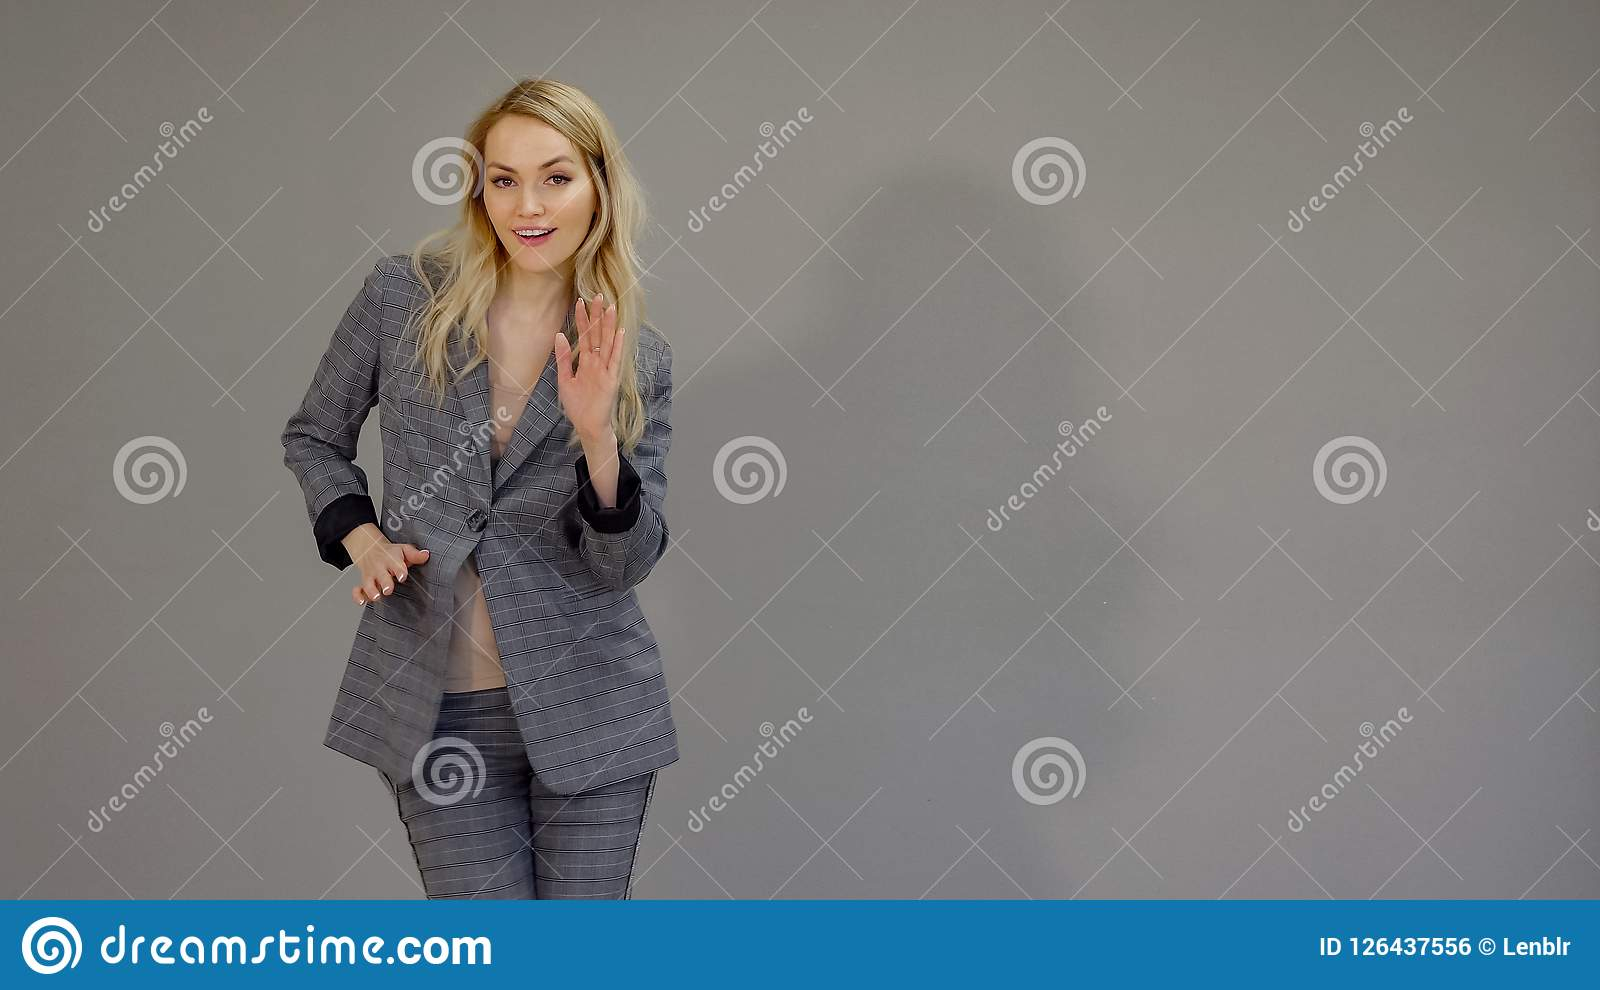 Happy dancer girl in suit dancing freestyle in office on the grey background.